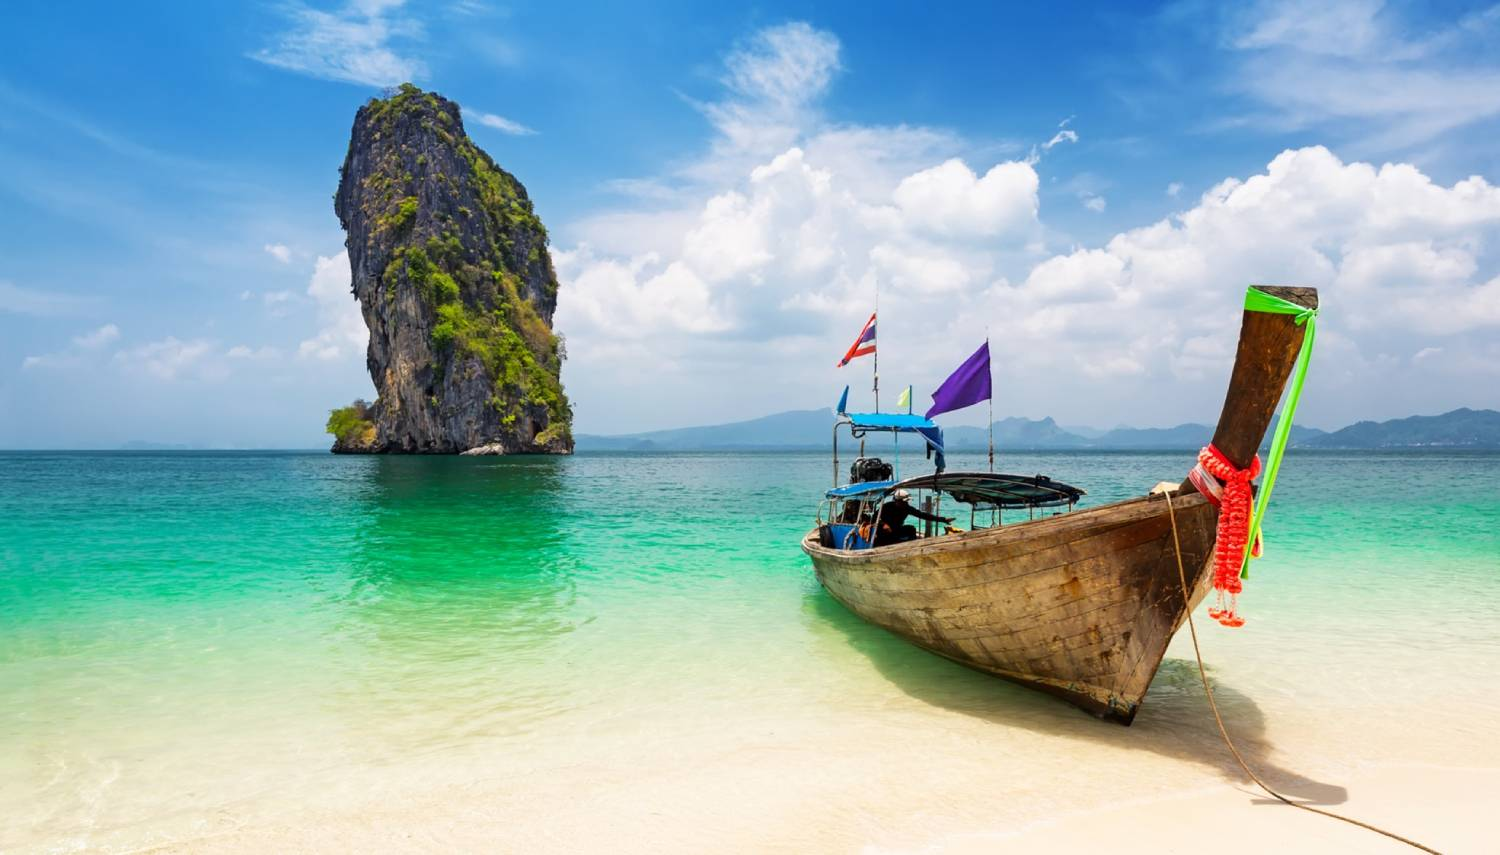 Koh Poda - The Best Places To Visit In Thailand